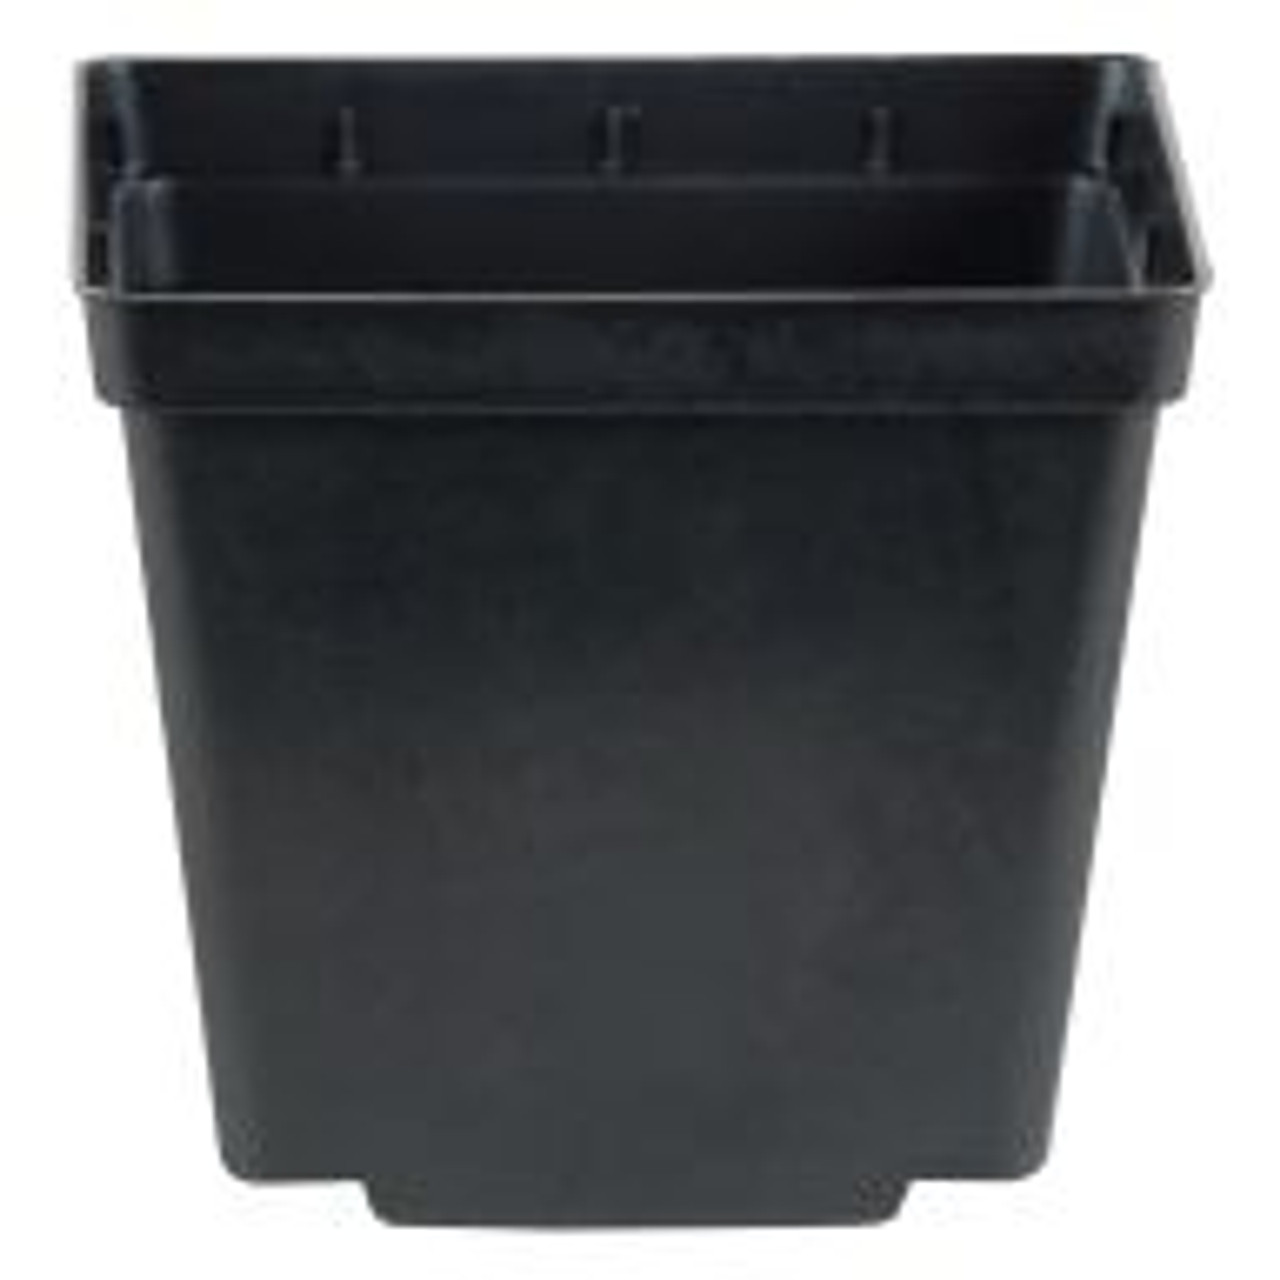 Kord Square Pots are stackable, sturdy and reusable for years.